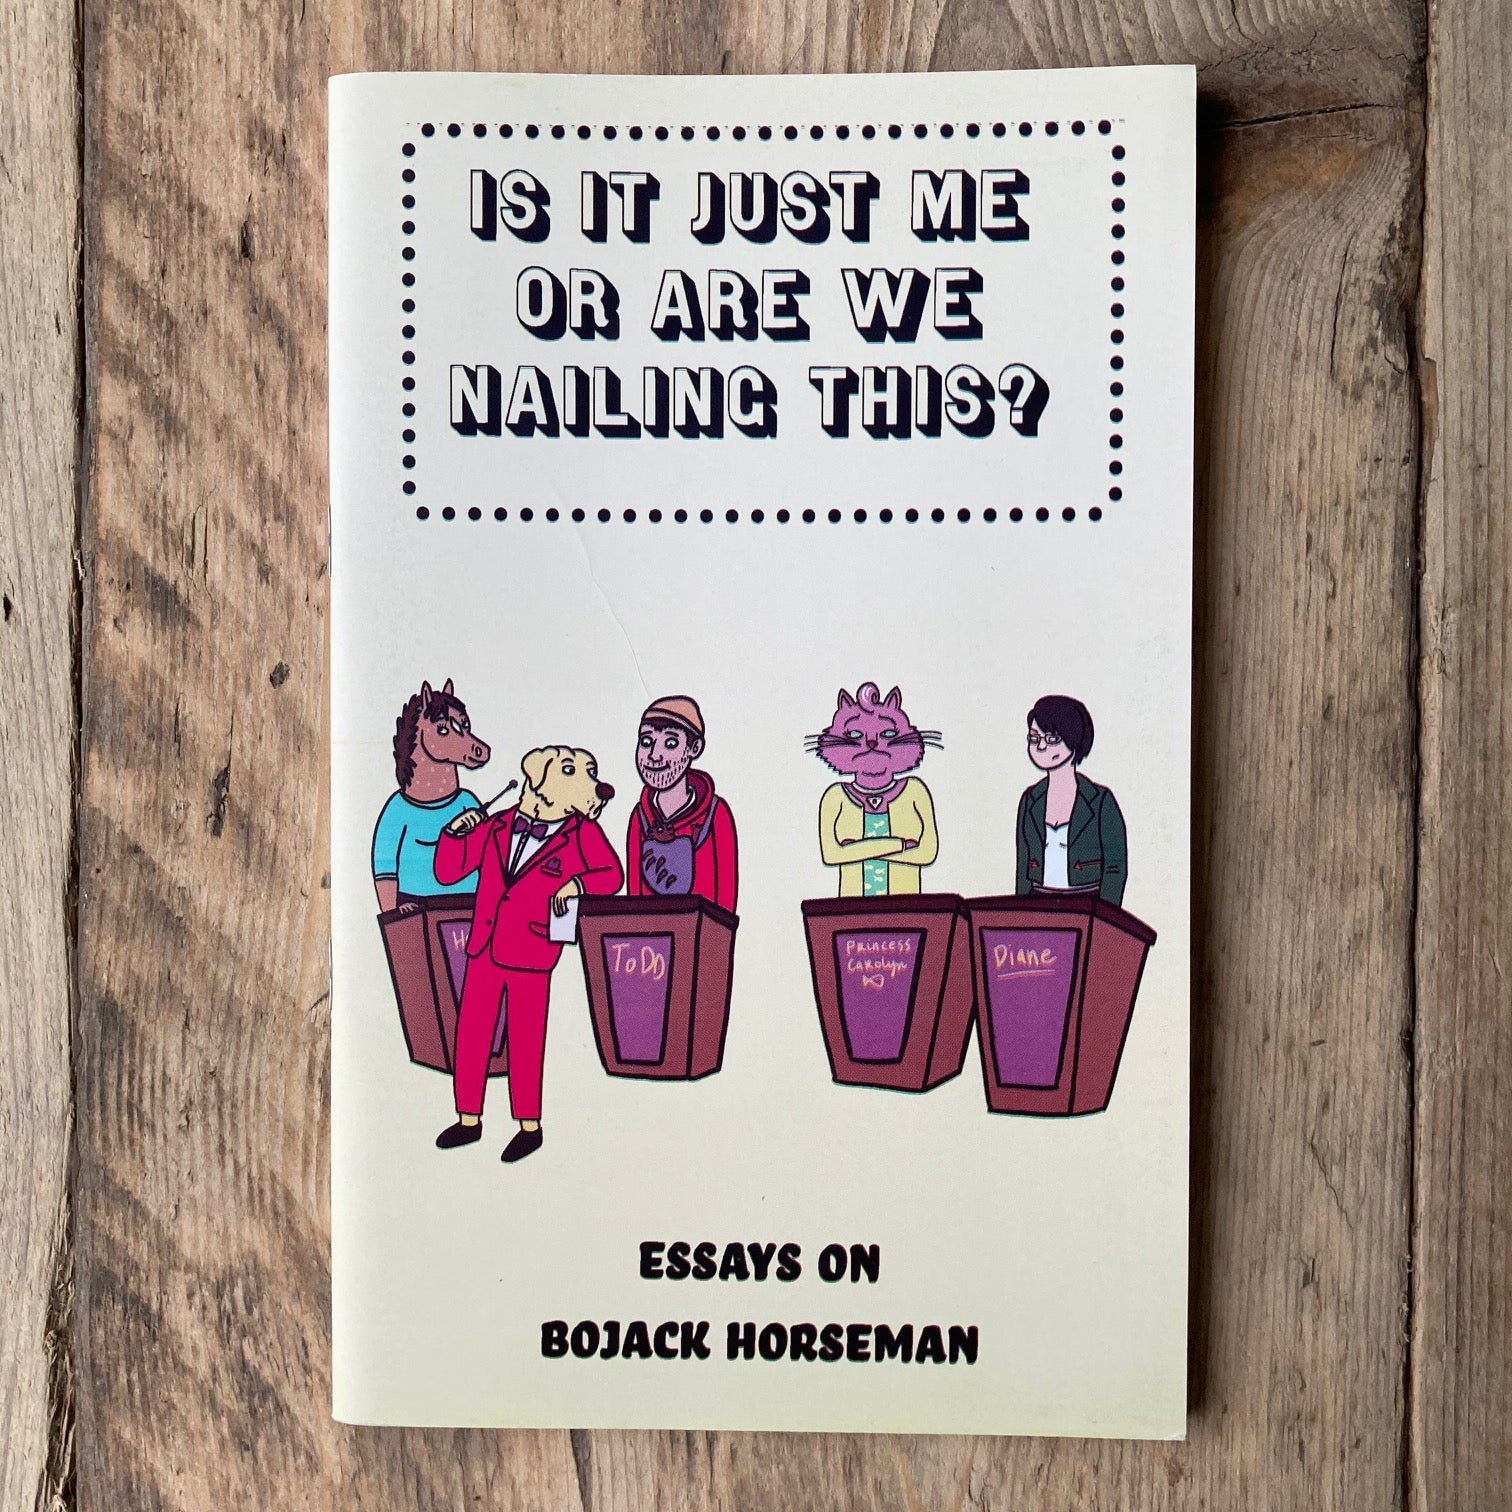 Is It Just Me or Are We Nailing This?: Essays on BoJack Horseman - Zine